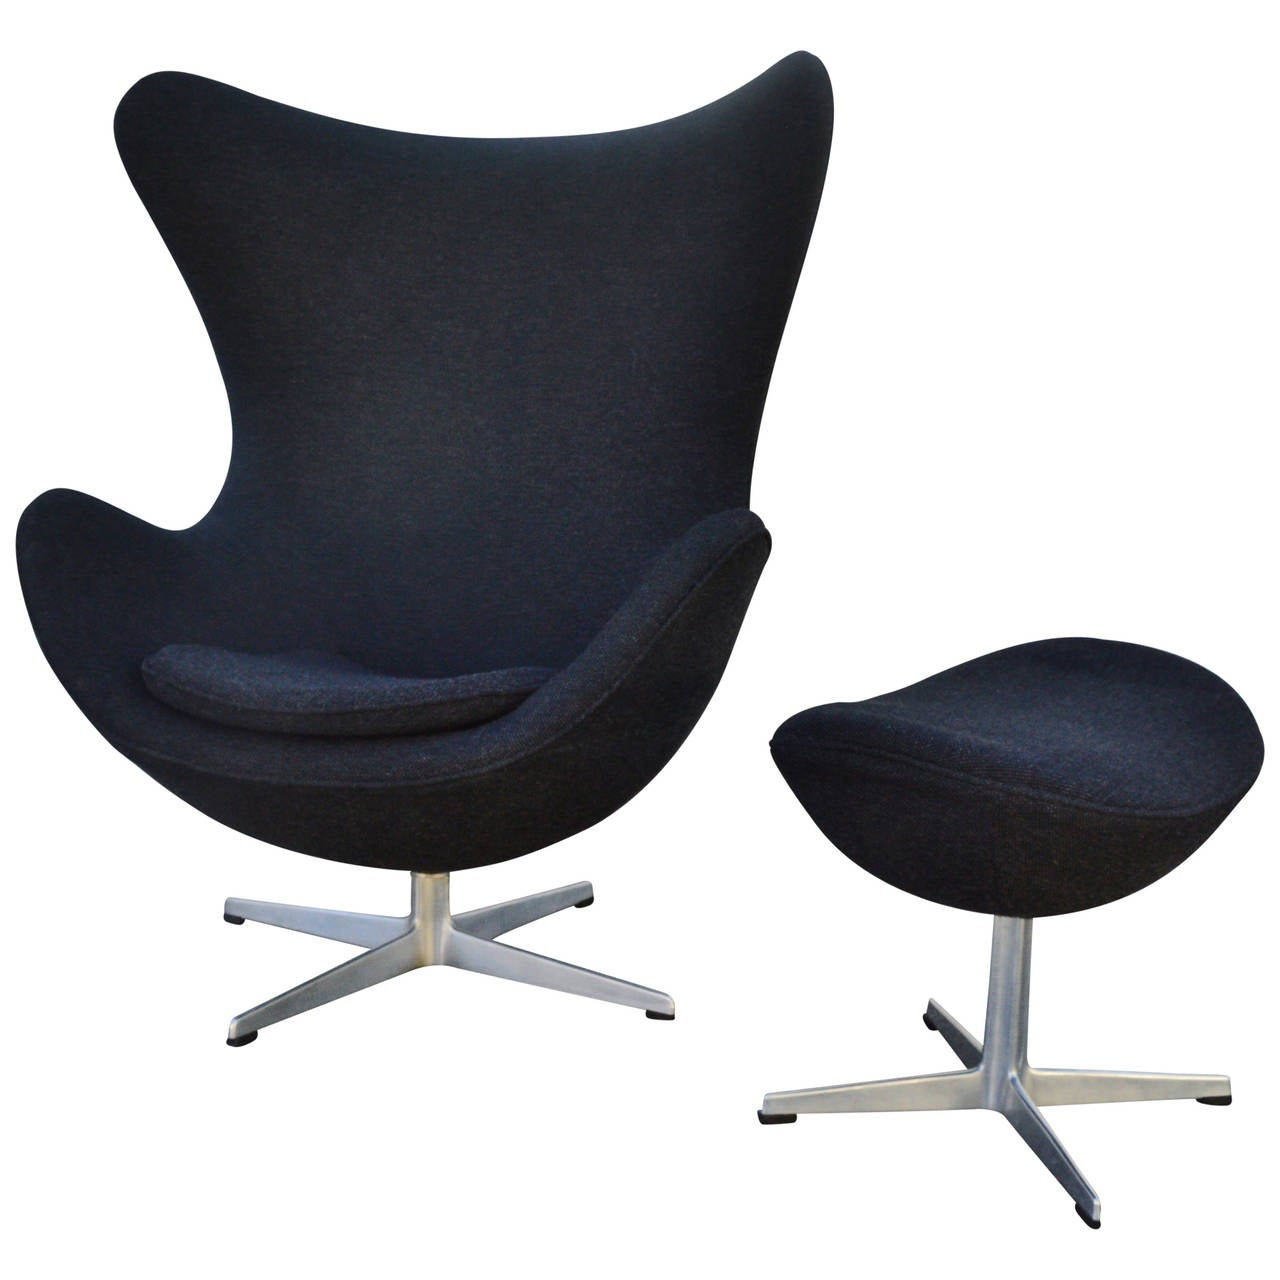 Iconic arne jacobsen for fritz hansen egg chair and for Egg chair jacobsen